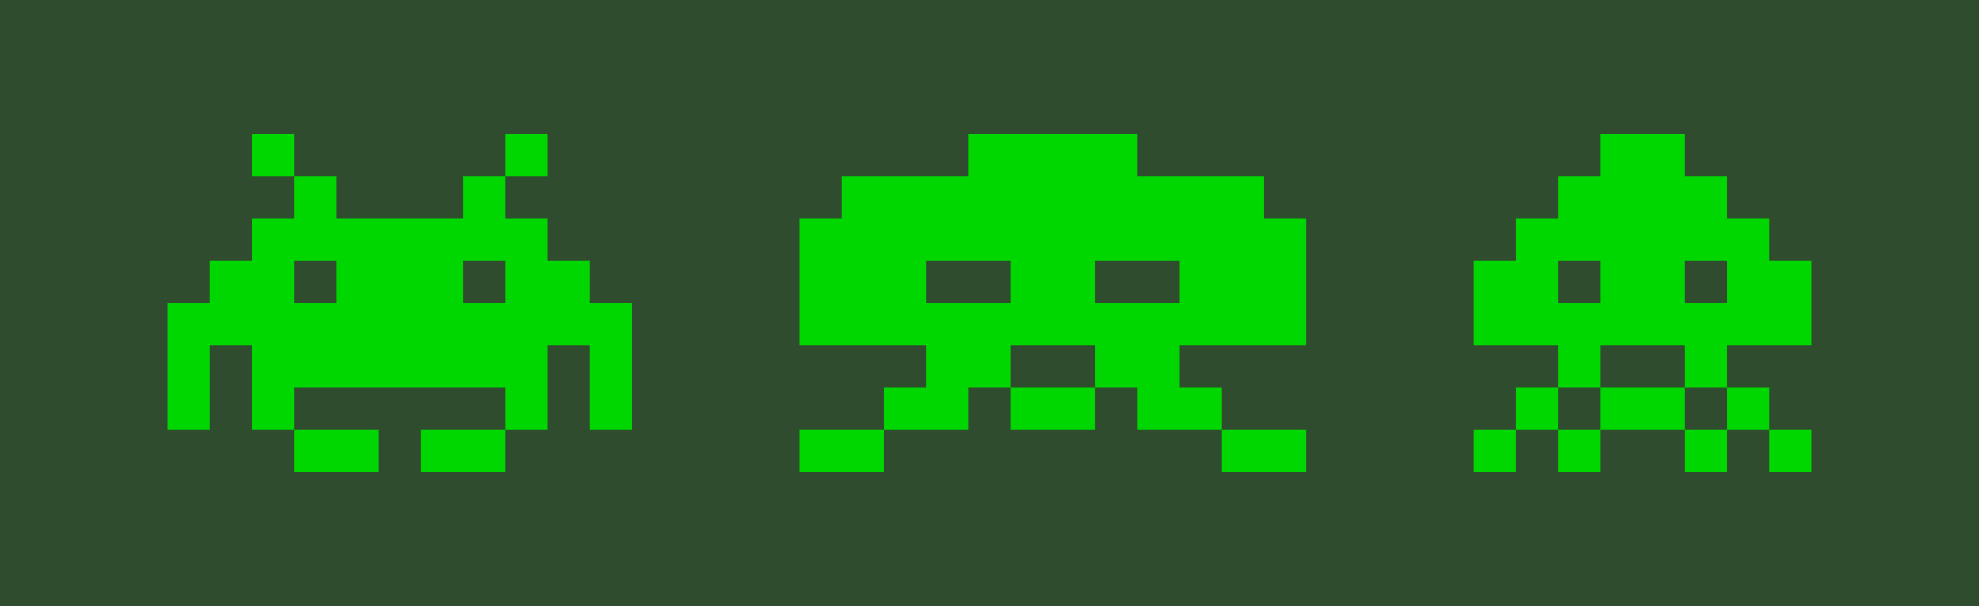 Space invader clipart.